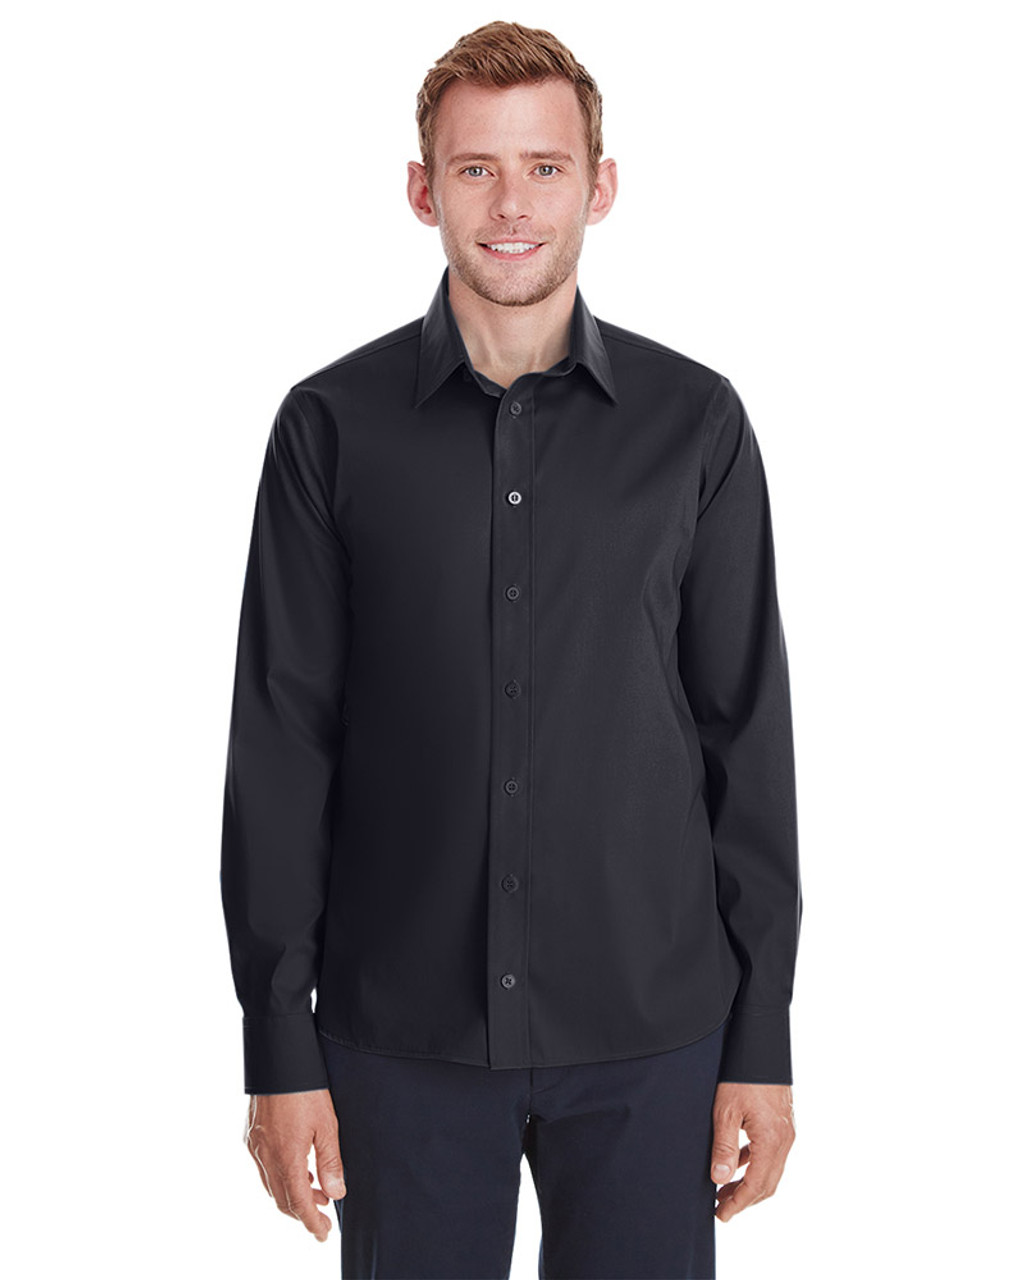 Black - DG561 Devon & Jones Men's Crown Collection™ Stretch Broadcloth Untucked Shirt | Blankclothing.ca